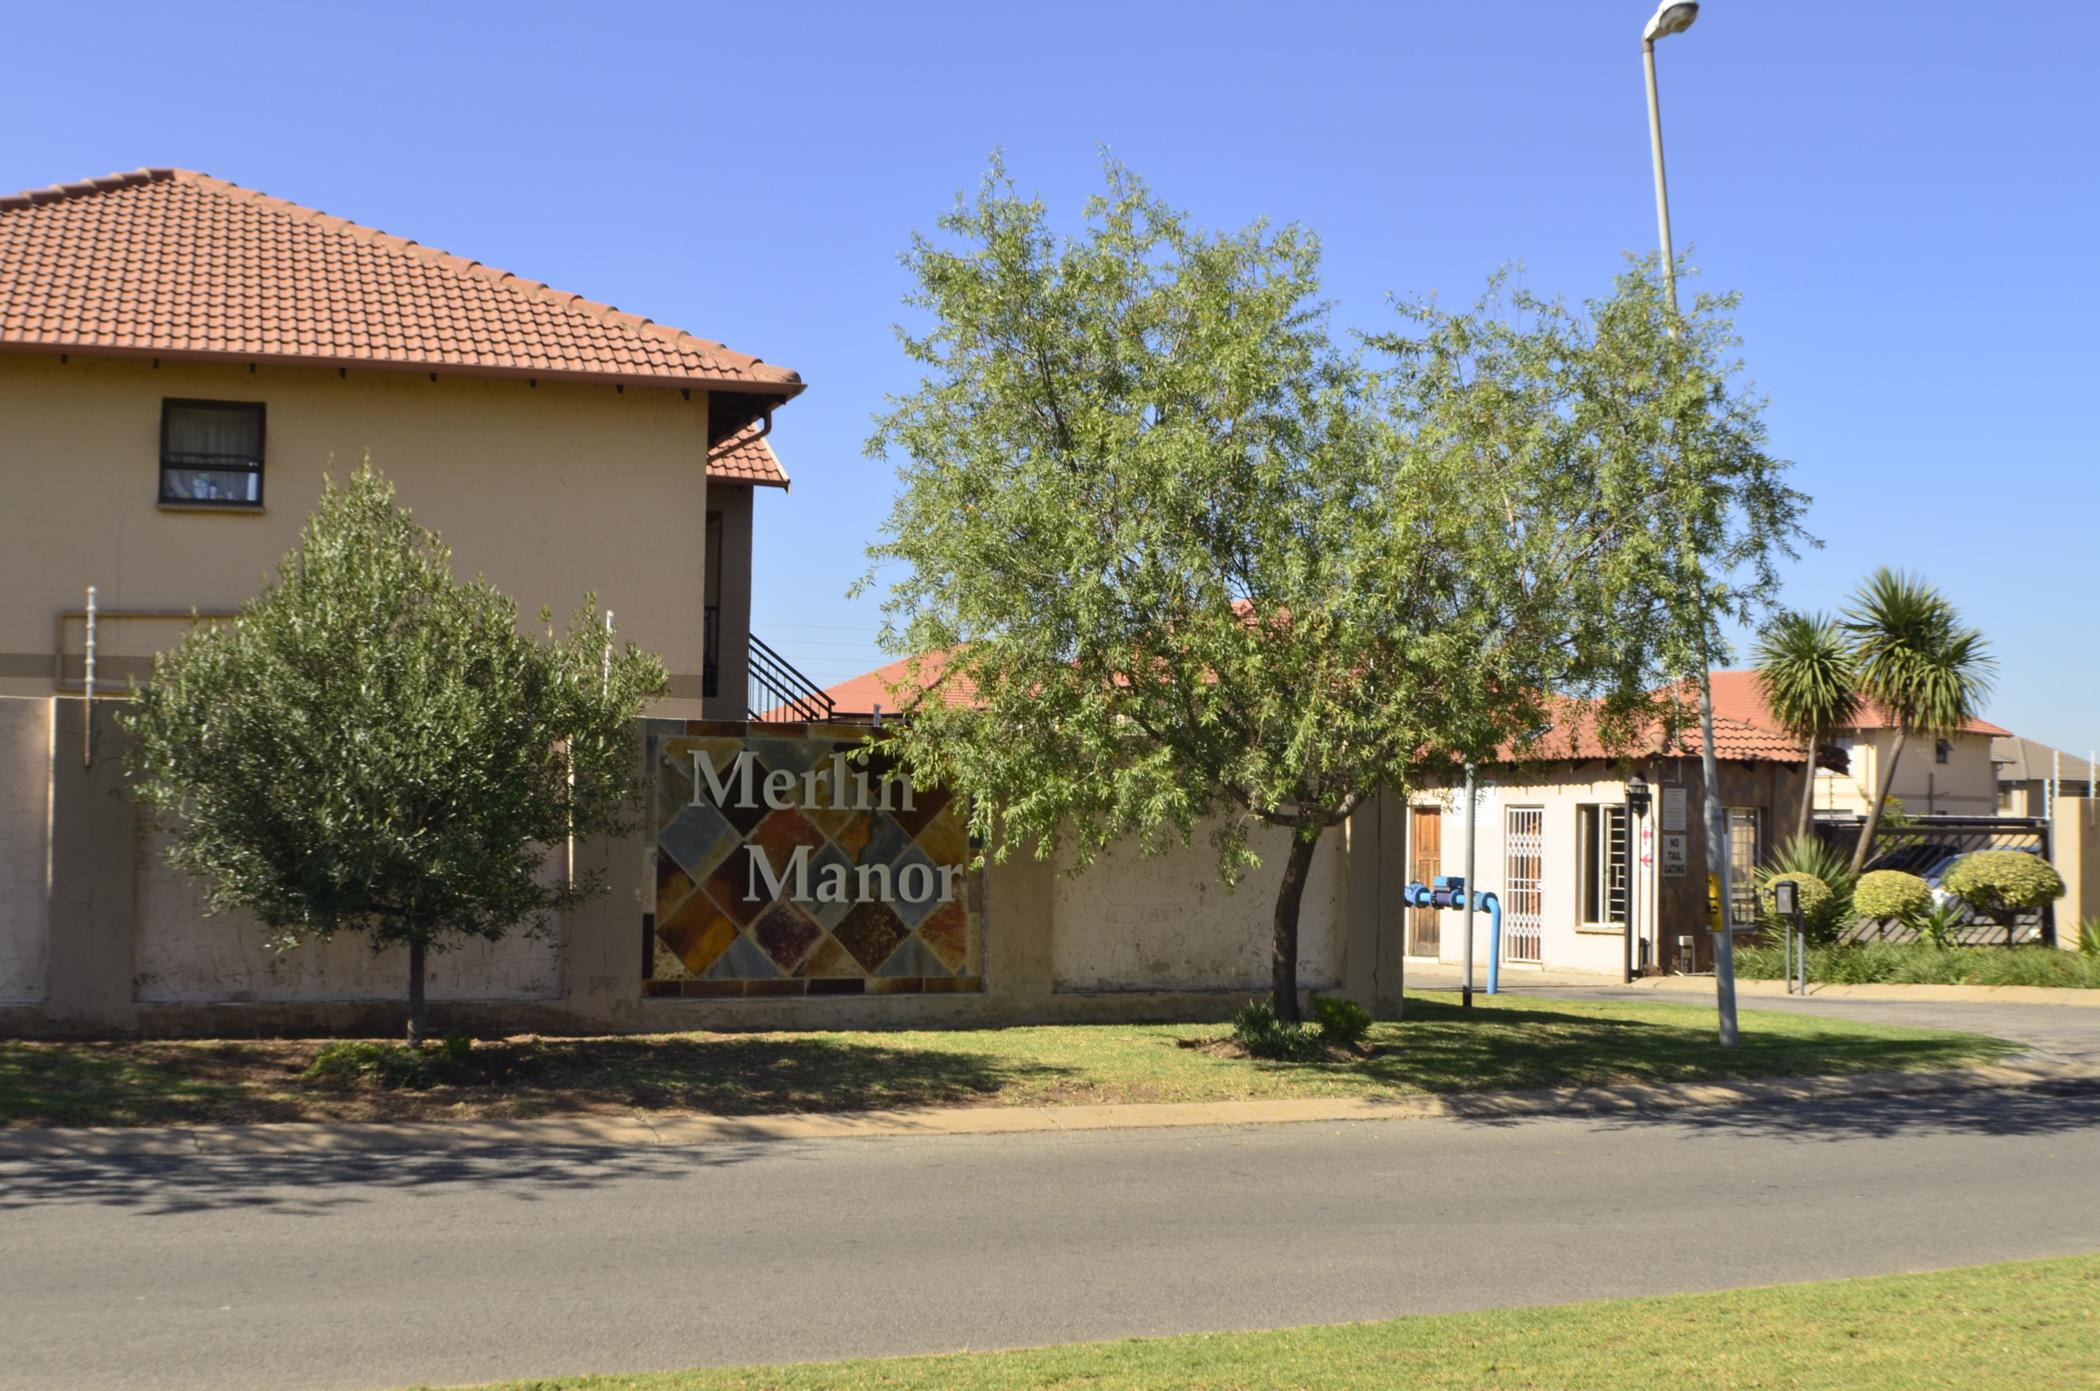 3 bedroom house for sale in parkrand r900,000